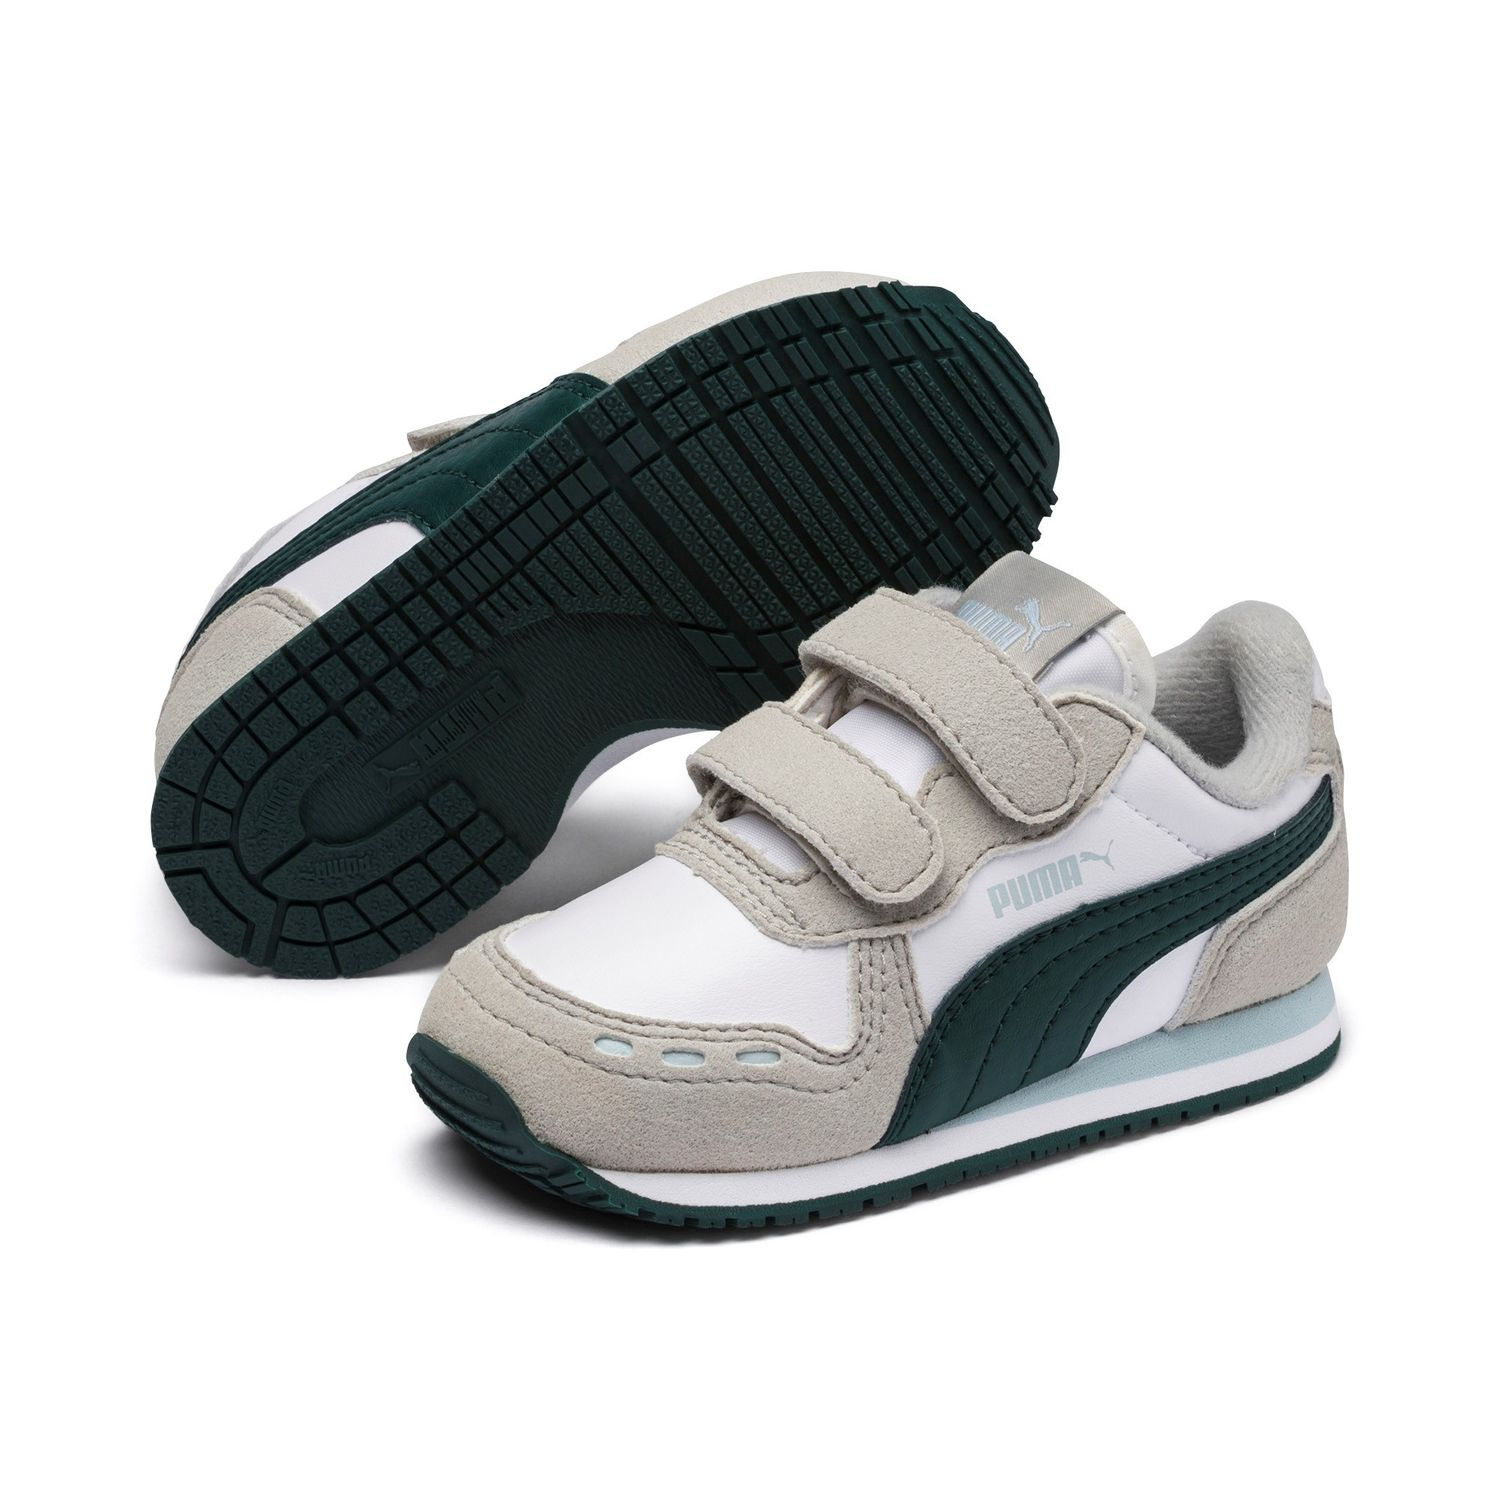 Details about Puma Cabana Racer SL V Inf Children Shoes Sneaker 351980 White Green show original title